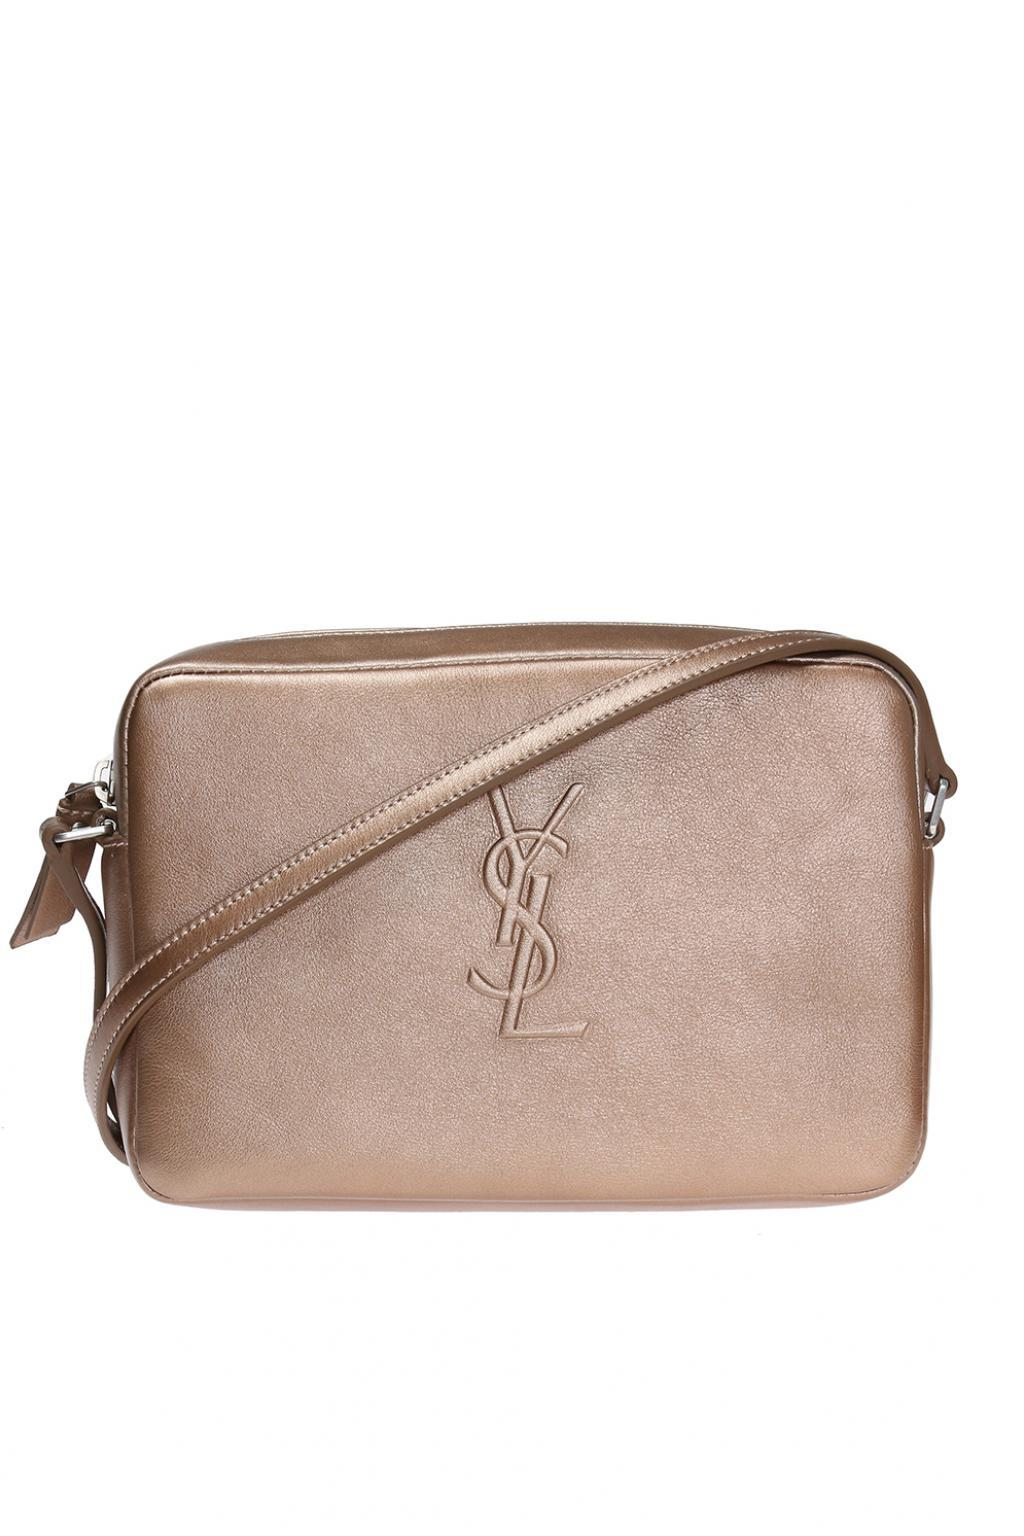 Lou shoulder bag - Brown Saint Laurent ok101